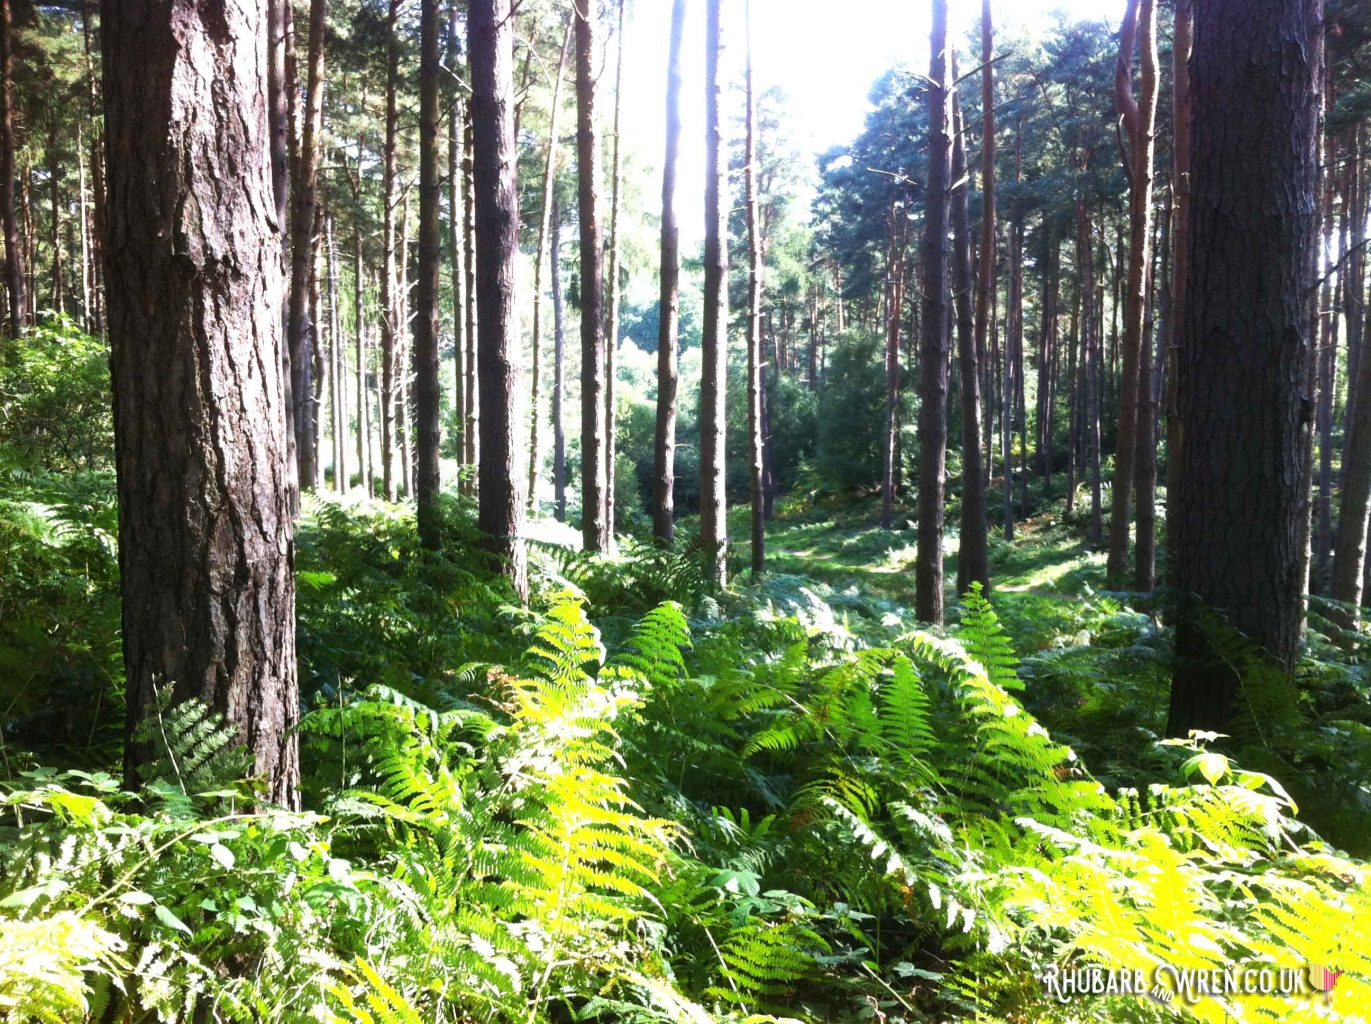 Forest of pine trees with ferns growing around them.